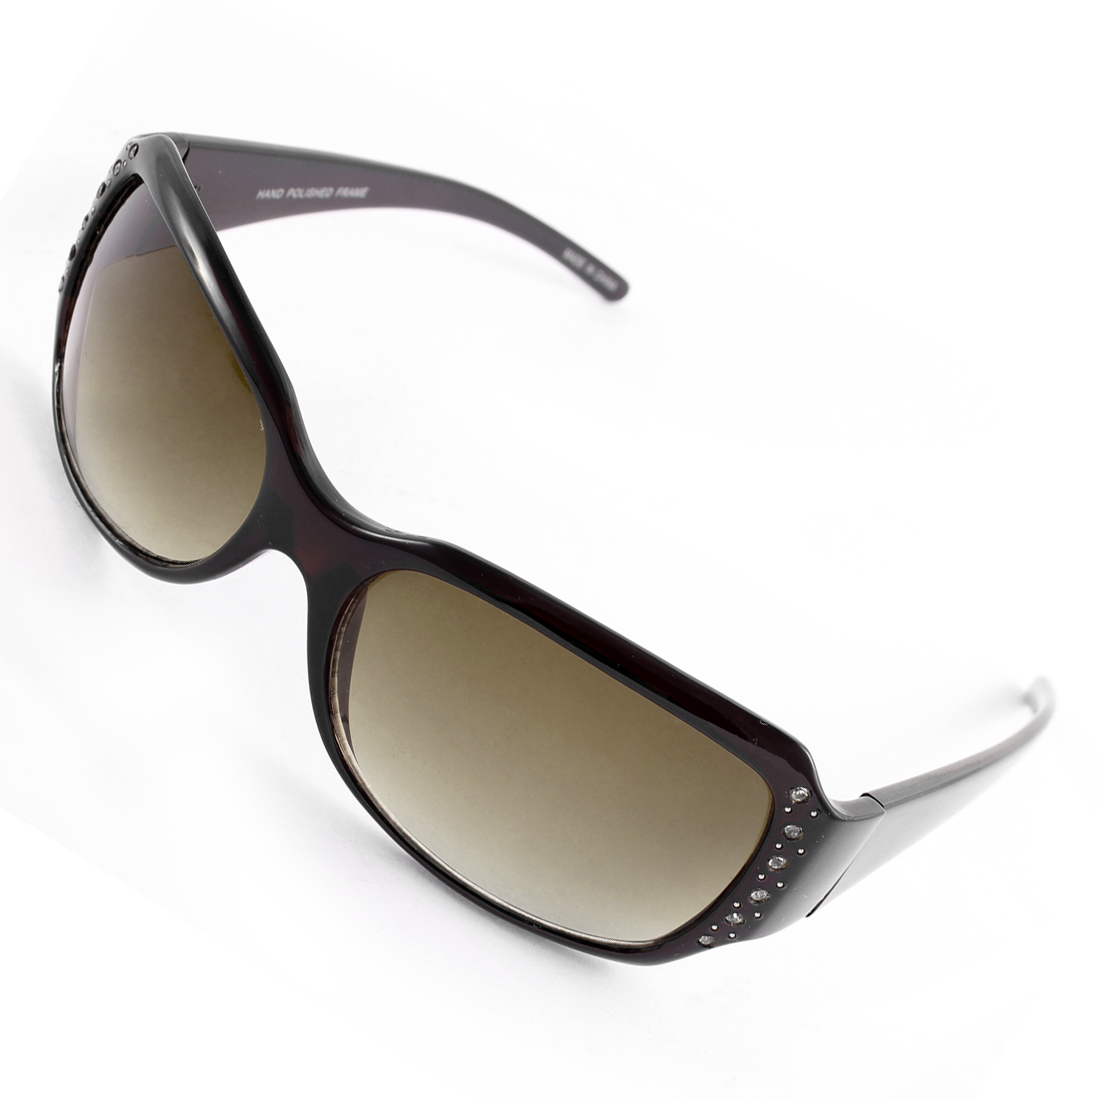 Rhinestone Decor Single Bridge Women Eye Protection Sunglasses Black